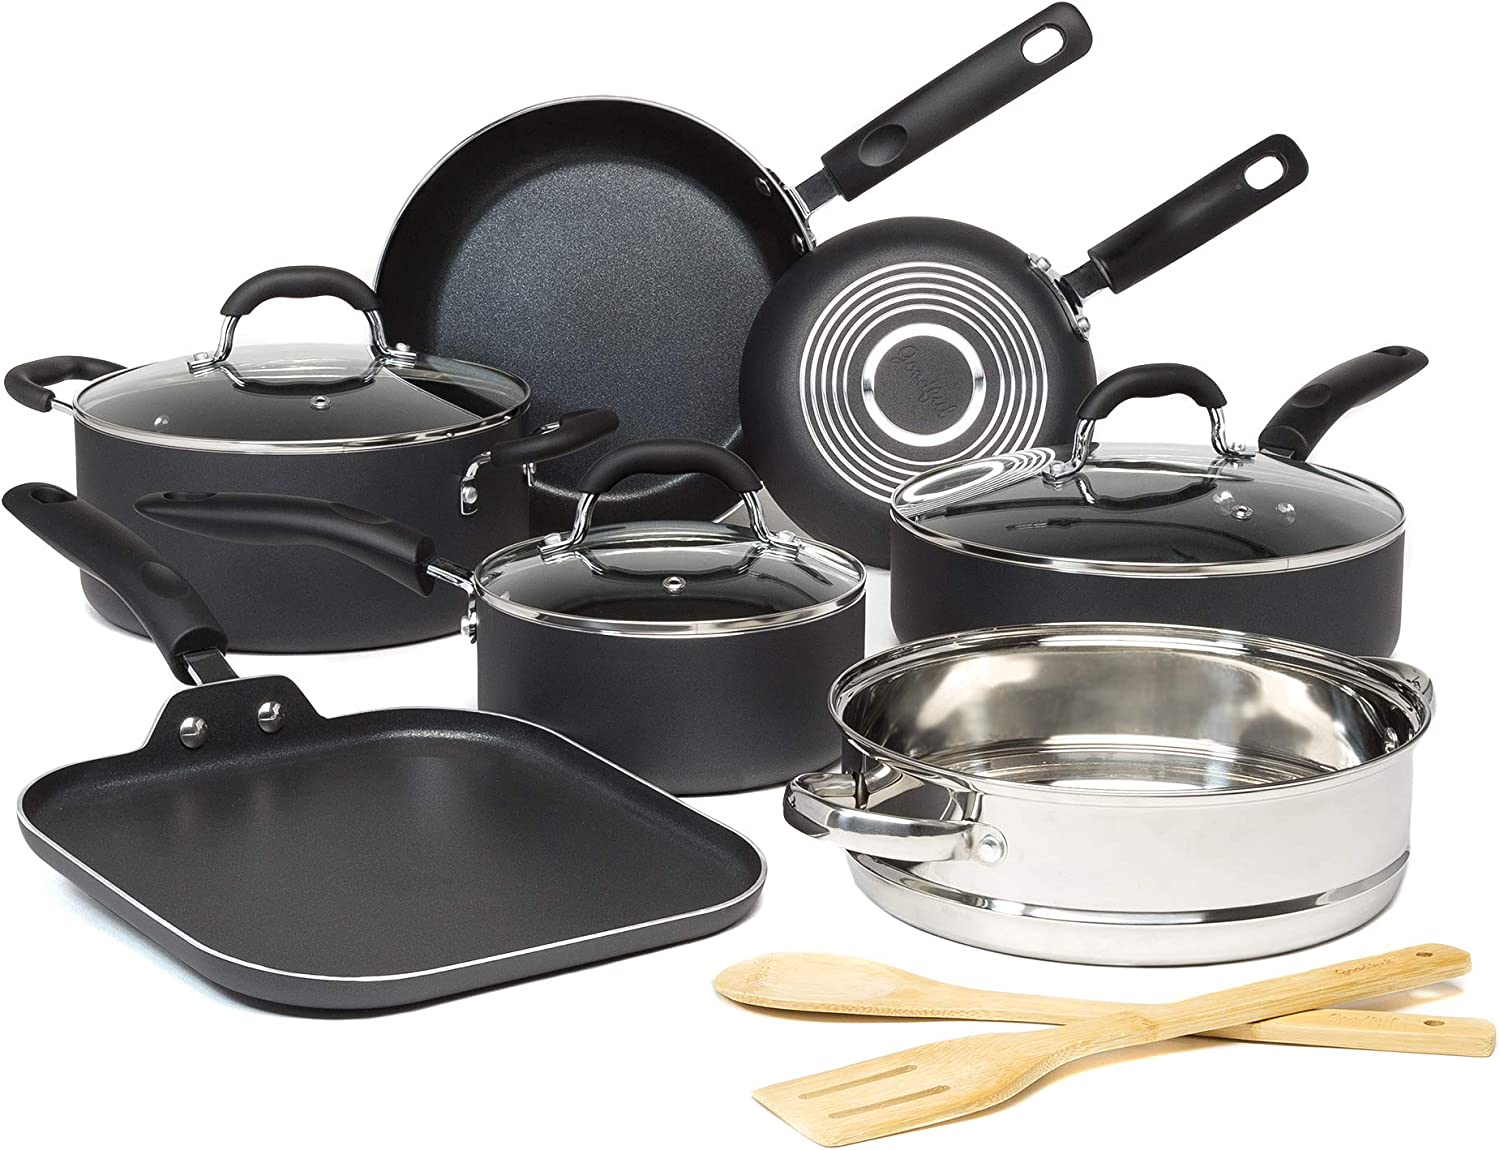 Goodful Premium Non-Stick Cookware Set, Dishwasher Safe Pots and Pans, Diamond Reinforced Coating, Made Without PFOA, 12-Piece, Charcoal Gray